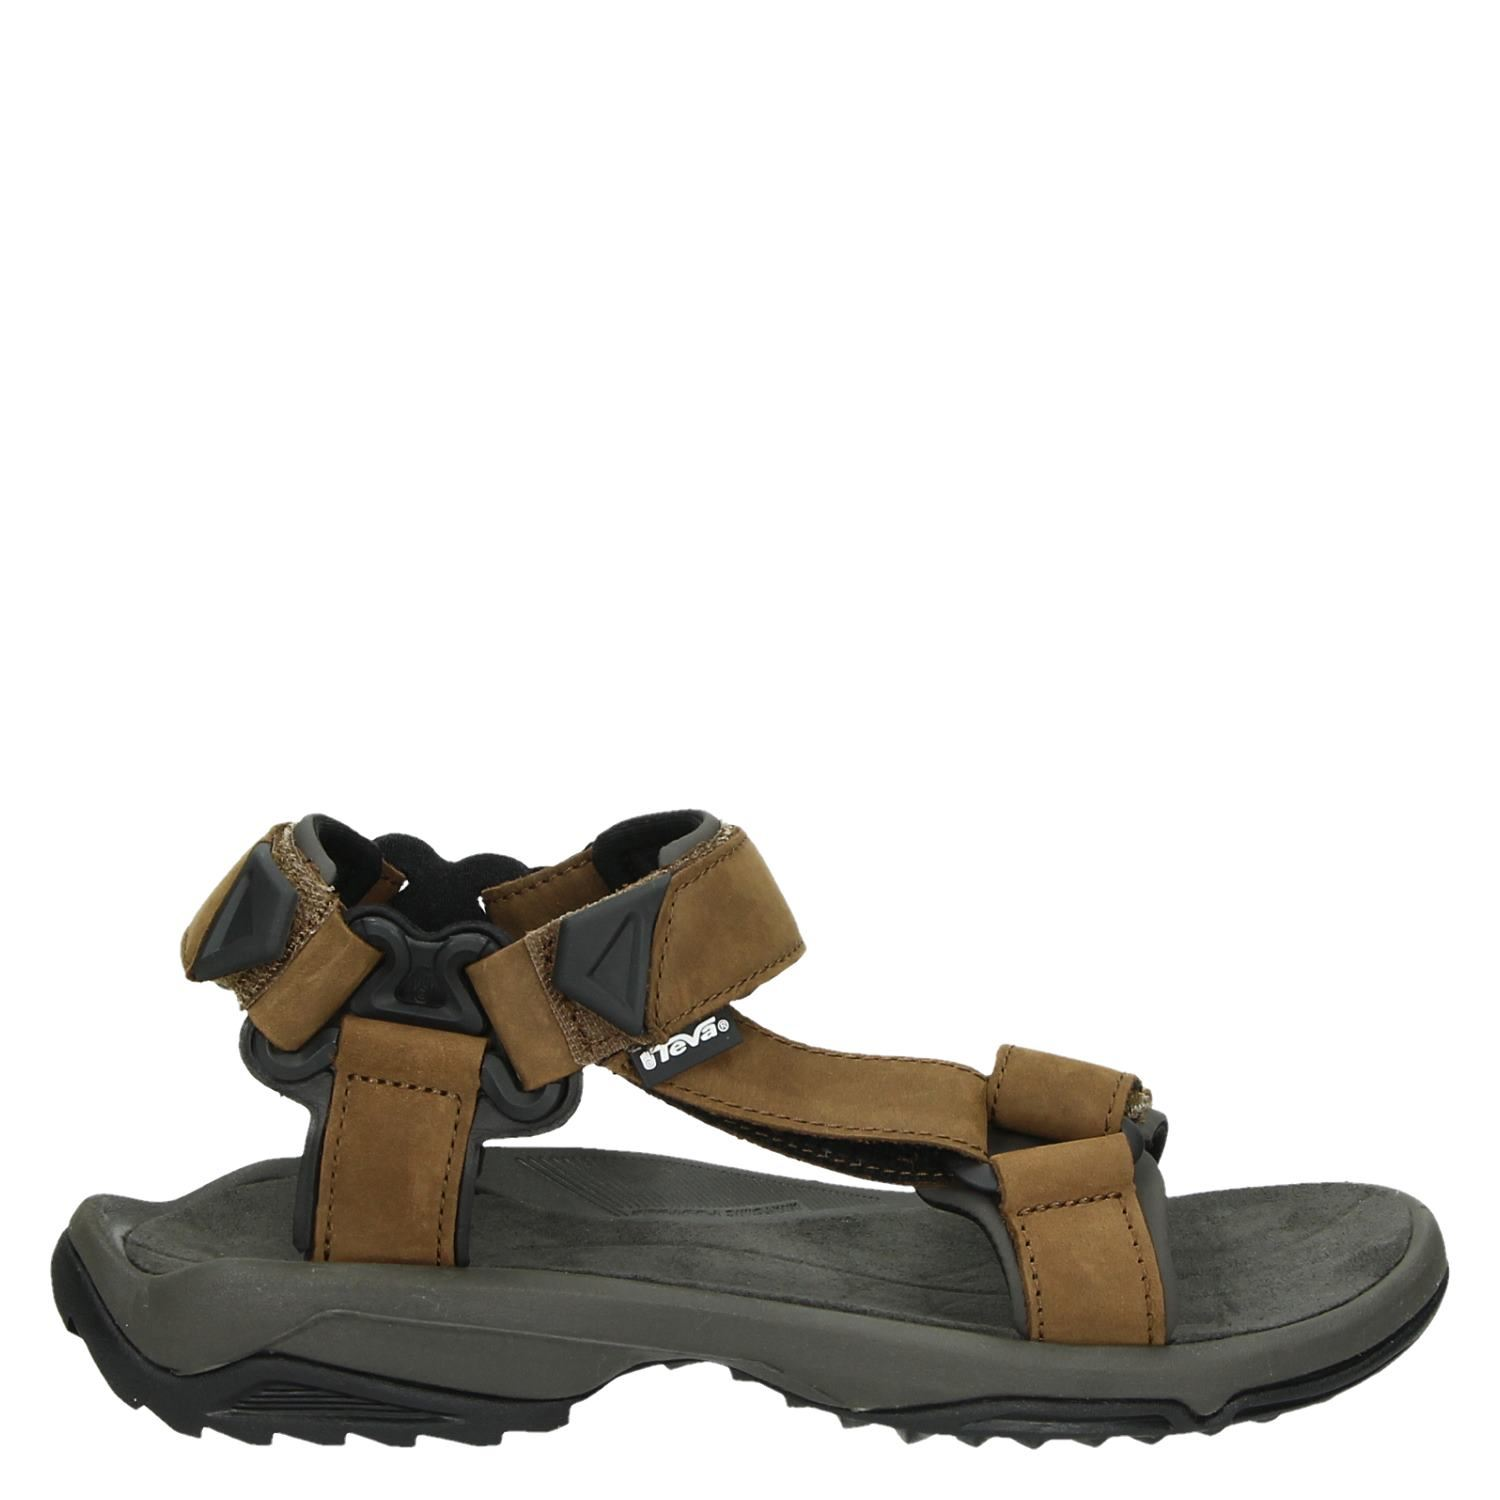 80d158bd101b43 Teva Terra Filite Leather heren sandalen bruin